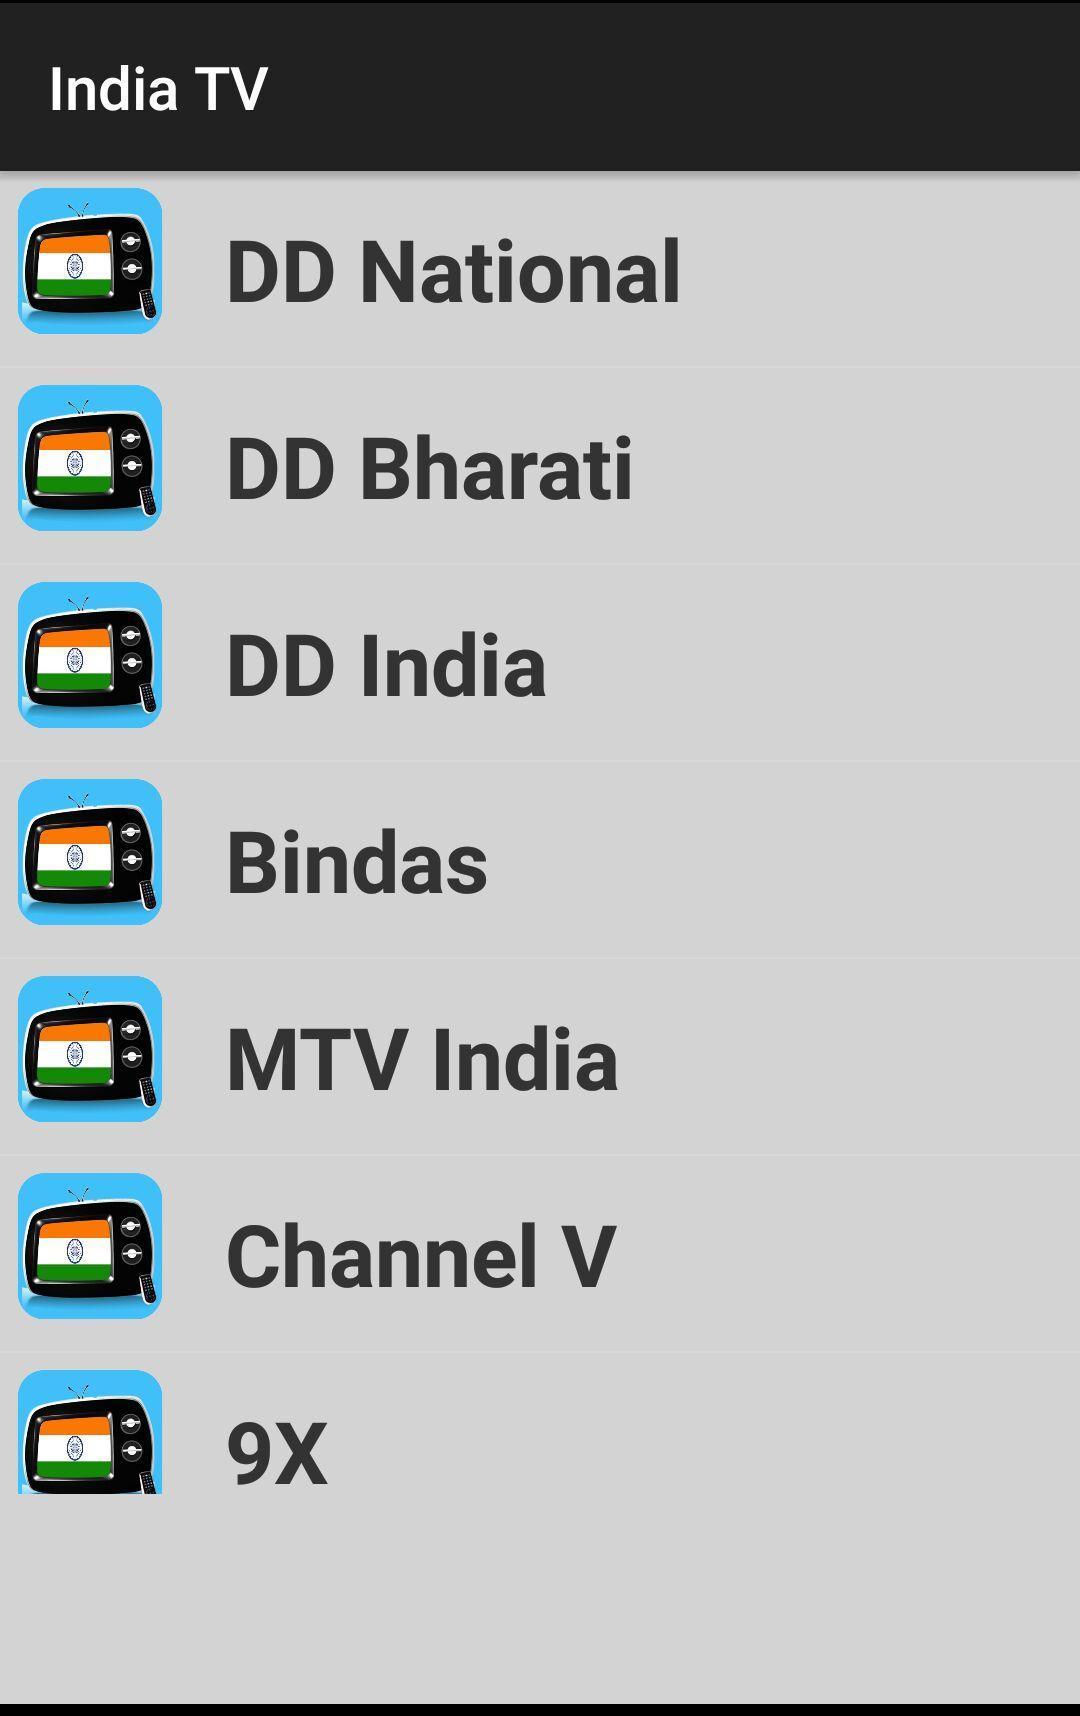 India TV - All Indian TV Channels HD for Android - APK Download